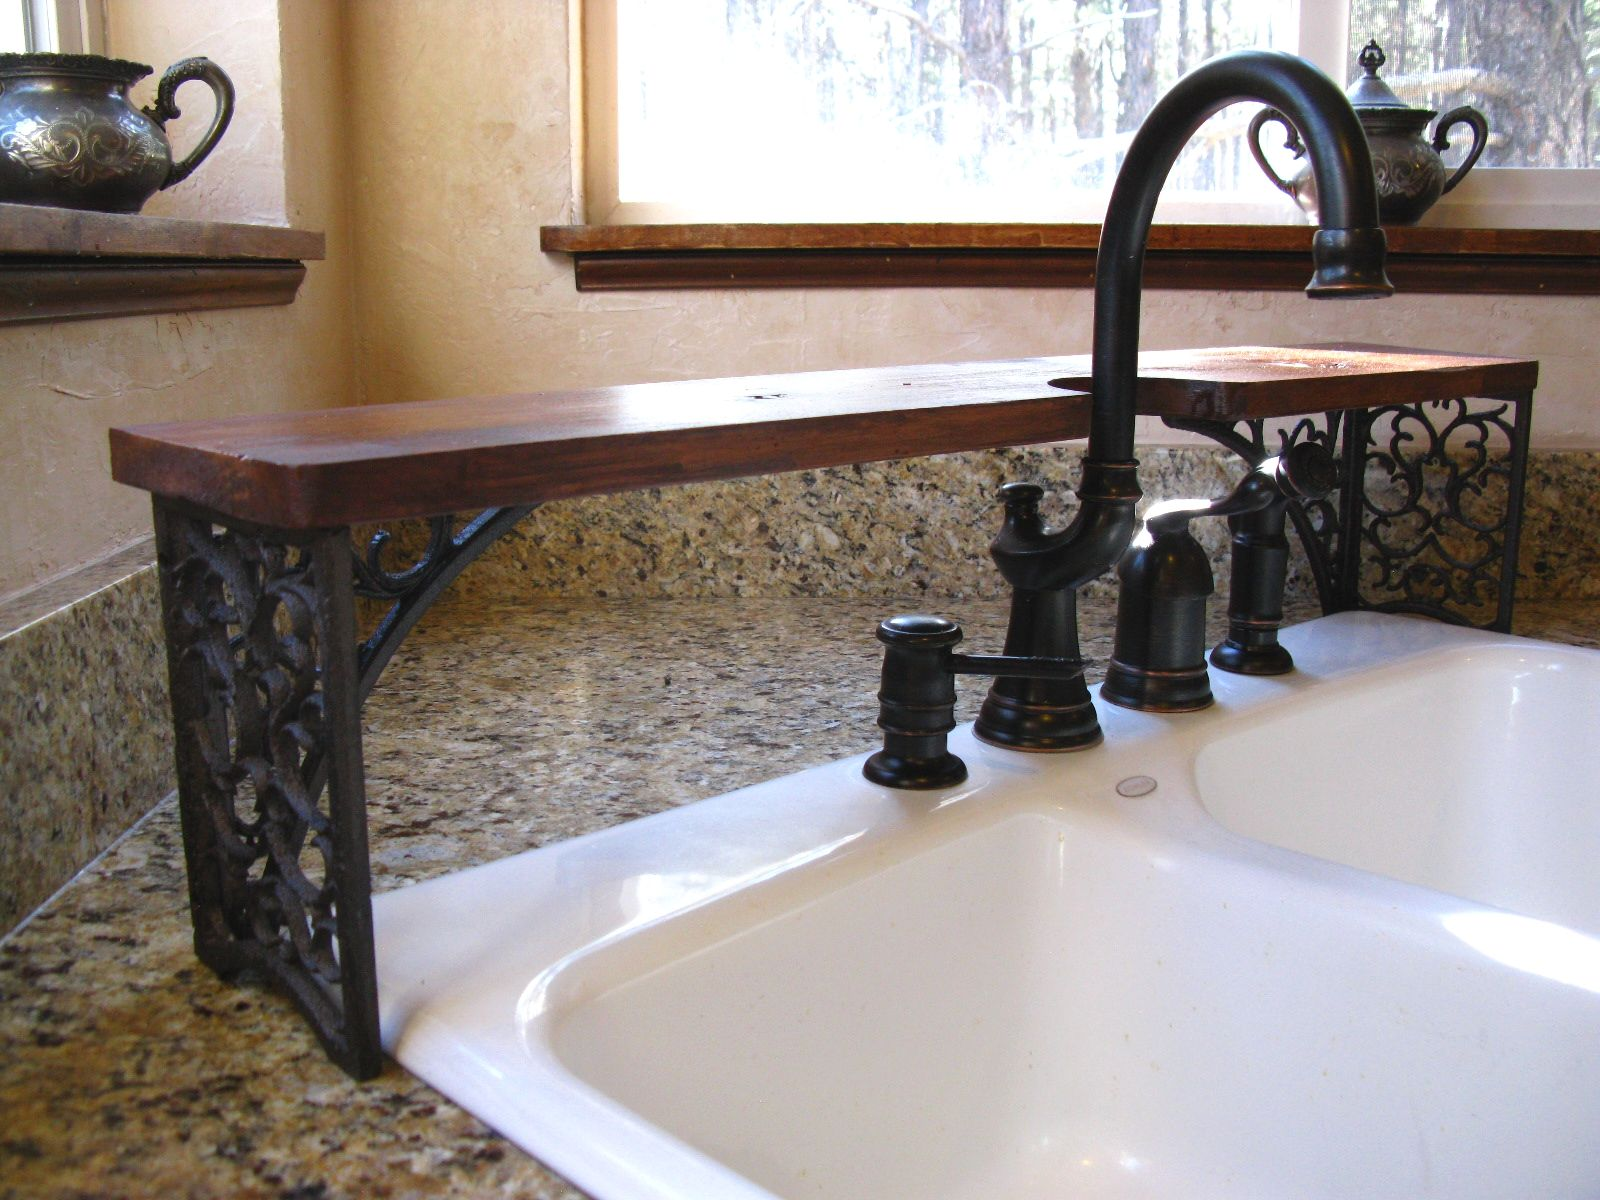 Over The Sink Shelf Bathroom. Over The Sink Shelf Cutout Galley Kitchen Faucet Wrought Iron Wood Detail Tuscan Old World